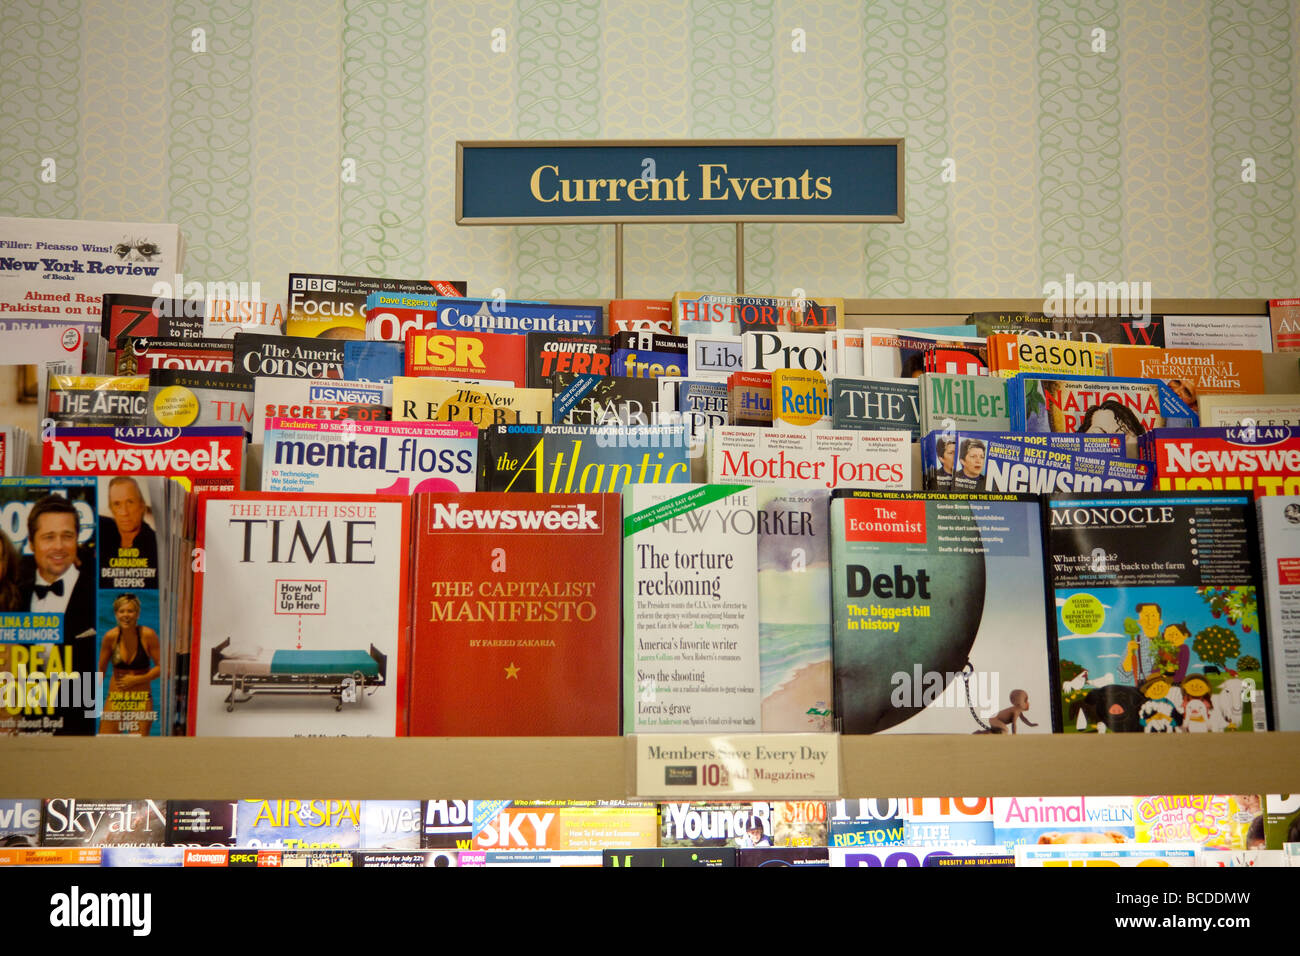 current events magazines on shelves, Barnes and Noble, USA - Stock Image